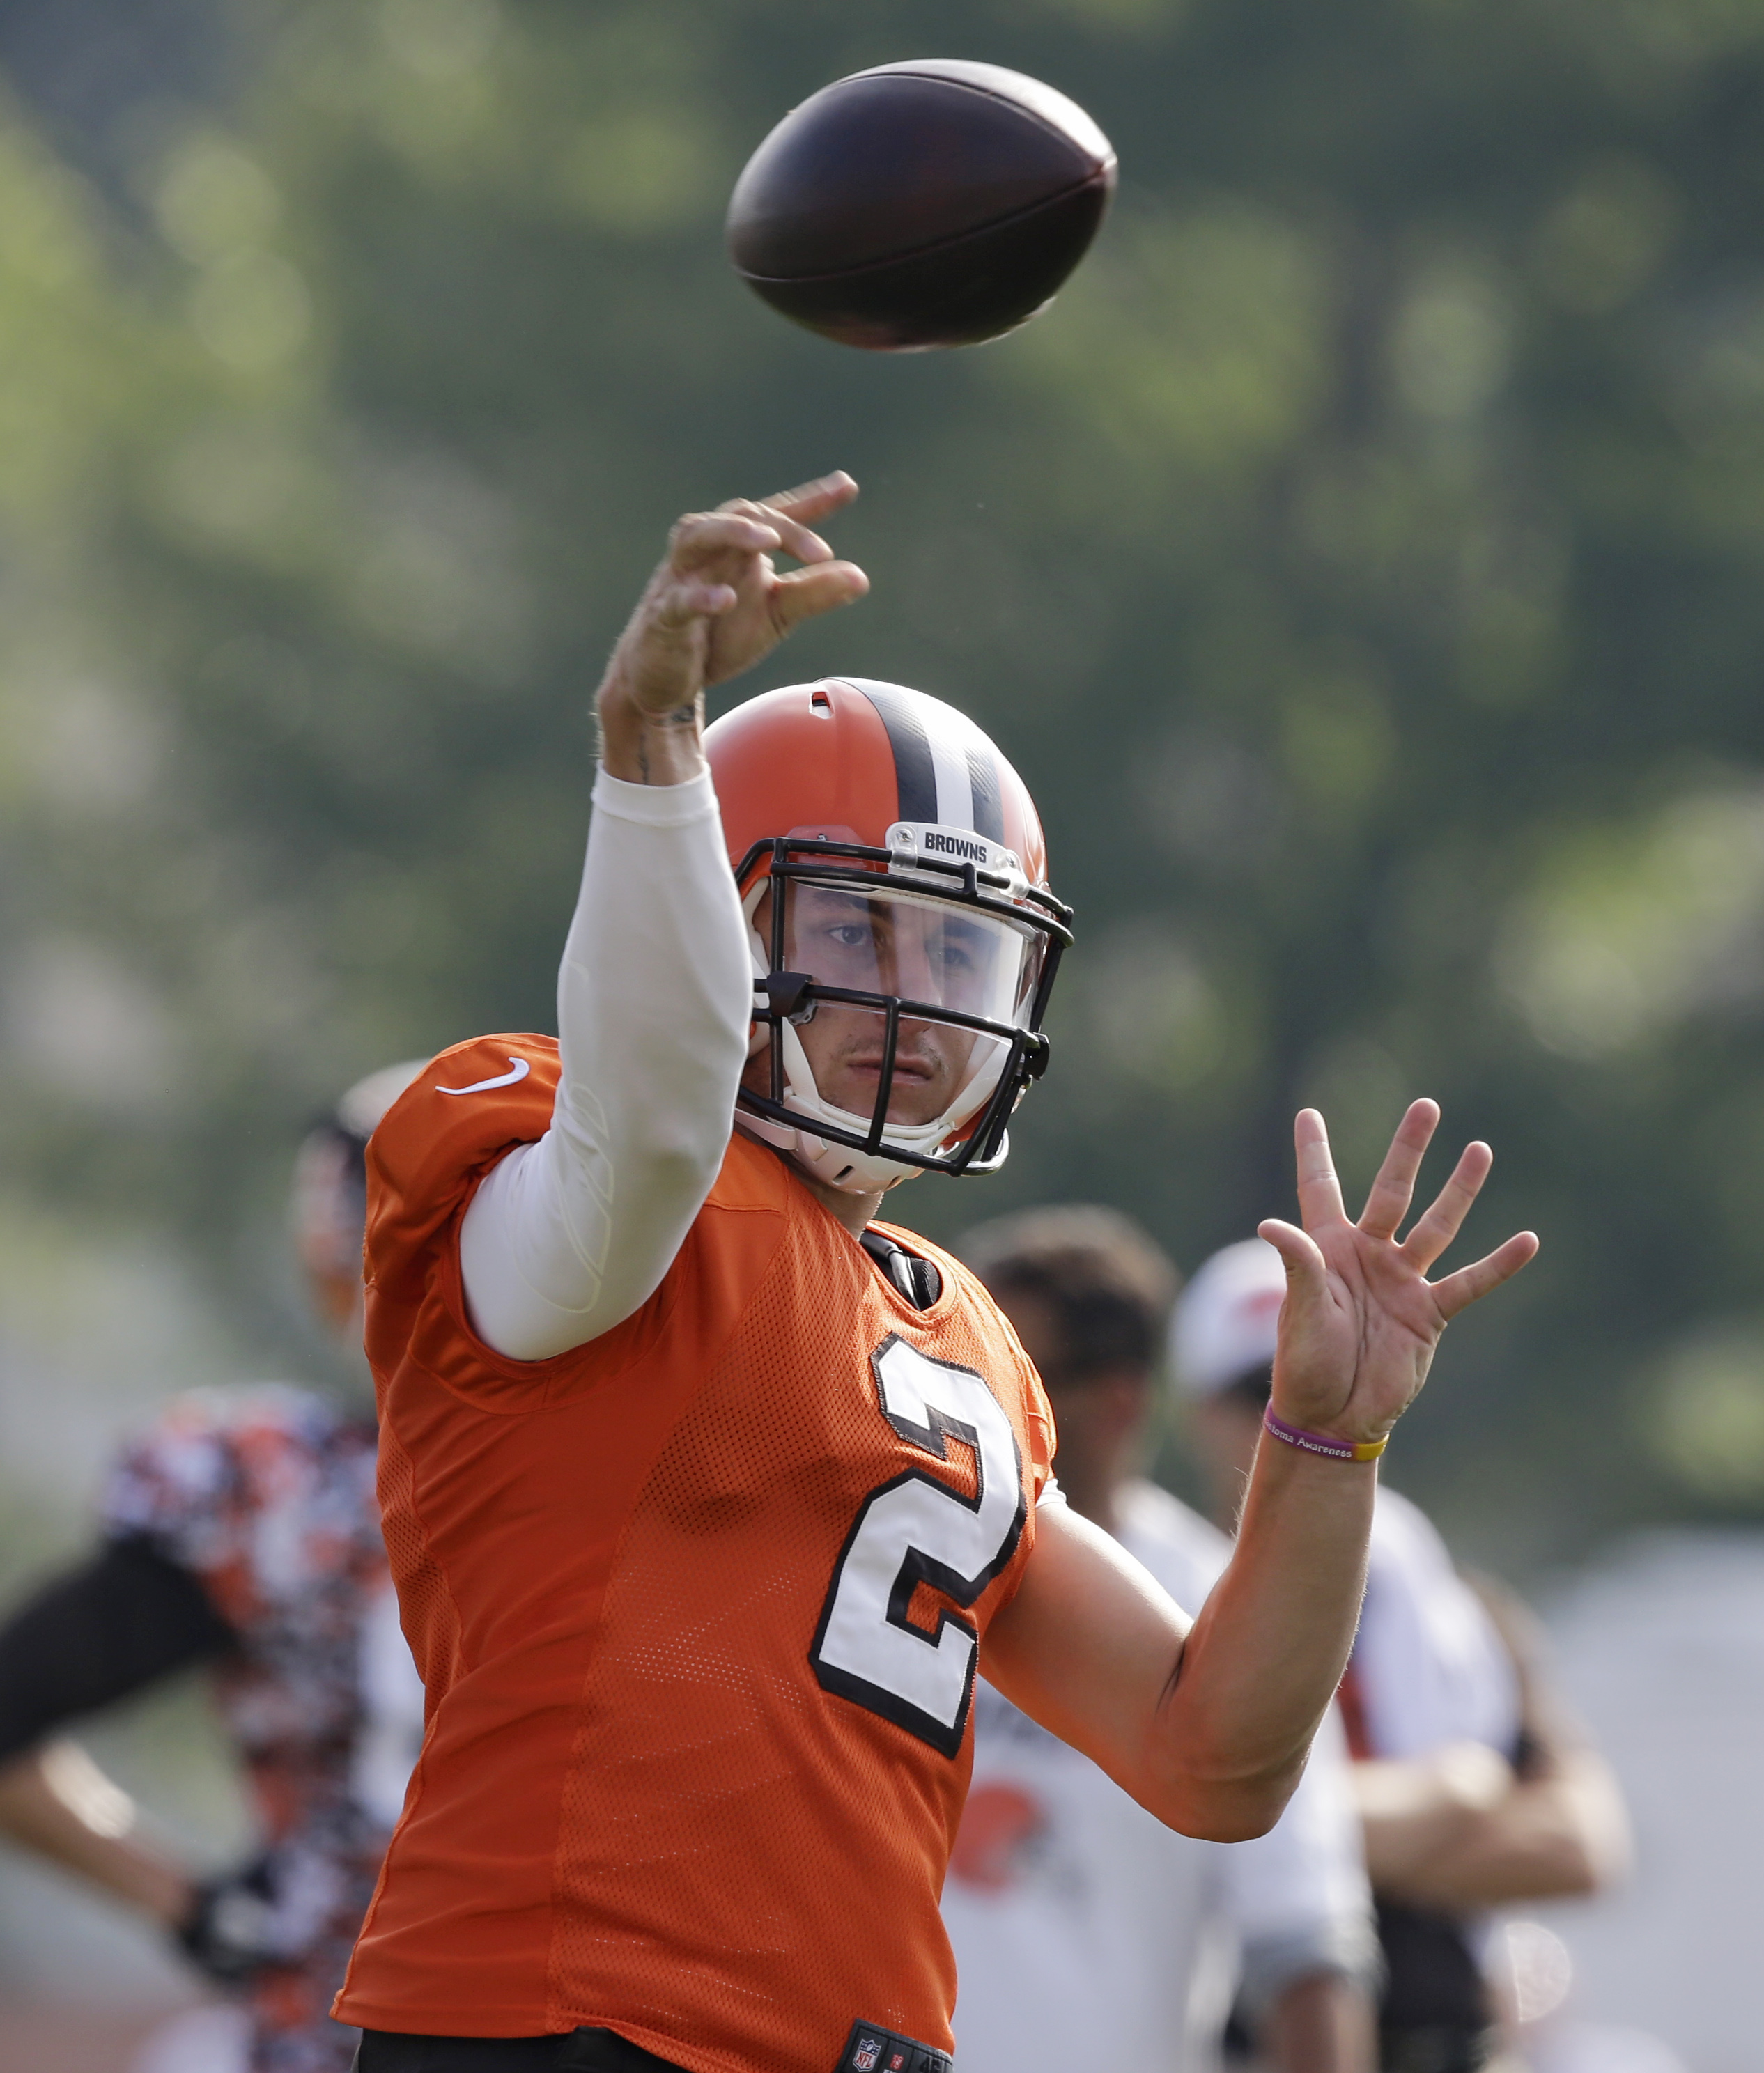 Cleveland Browns quarterback Johnny Manziel throws during practice at the NFL football team's training camp Monday, Aug. 10, 2015, in Berea, Ohio. (AP Photo/Tony Dejak)